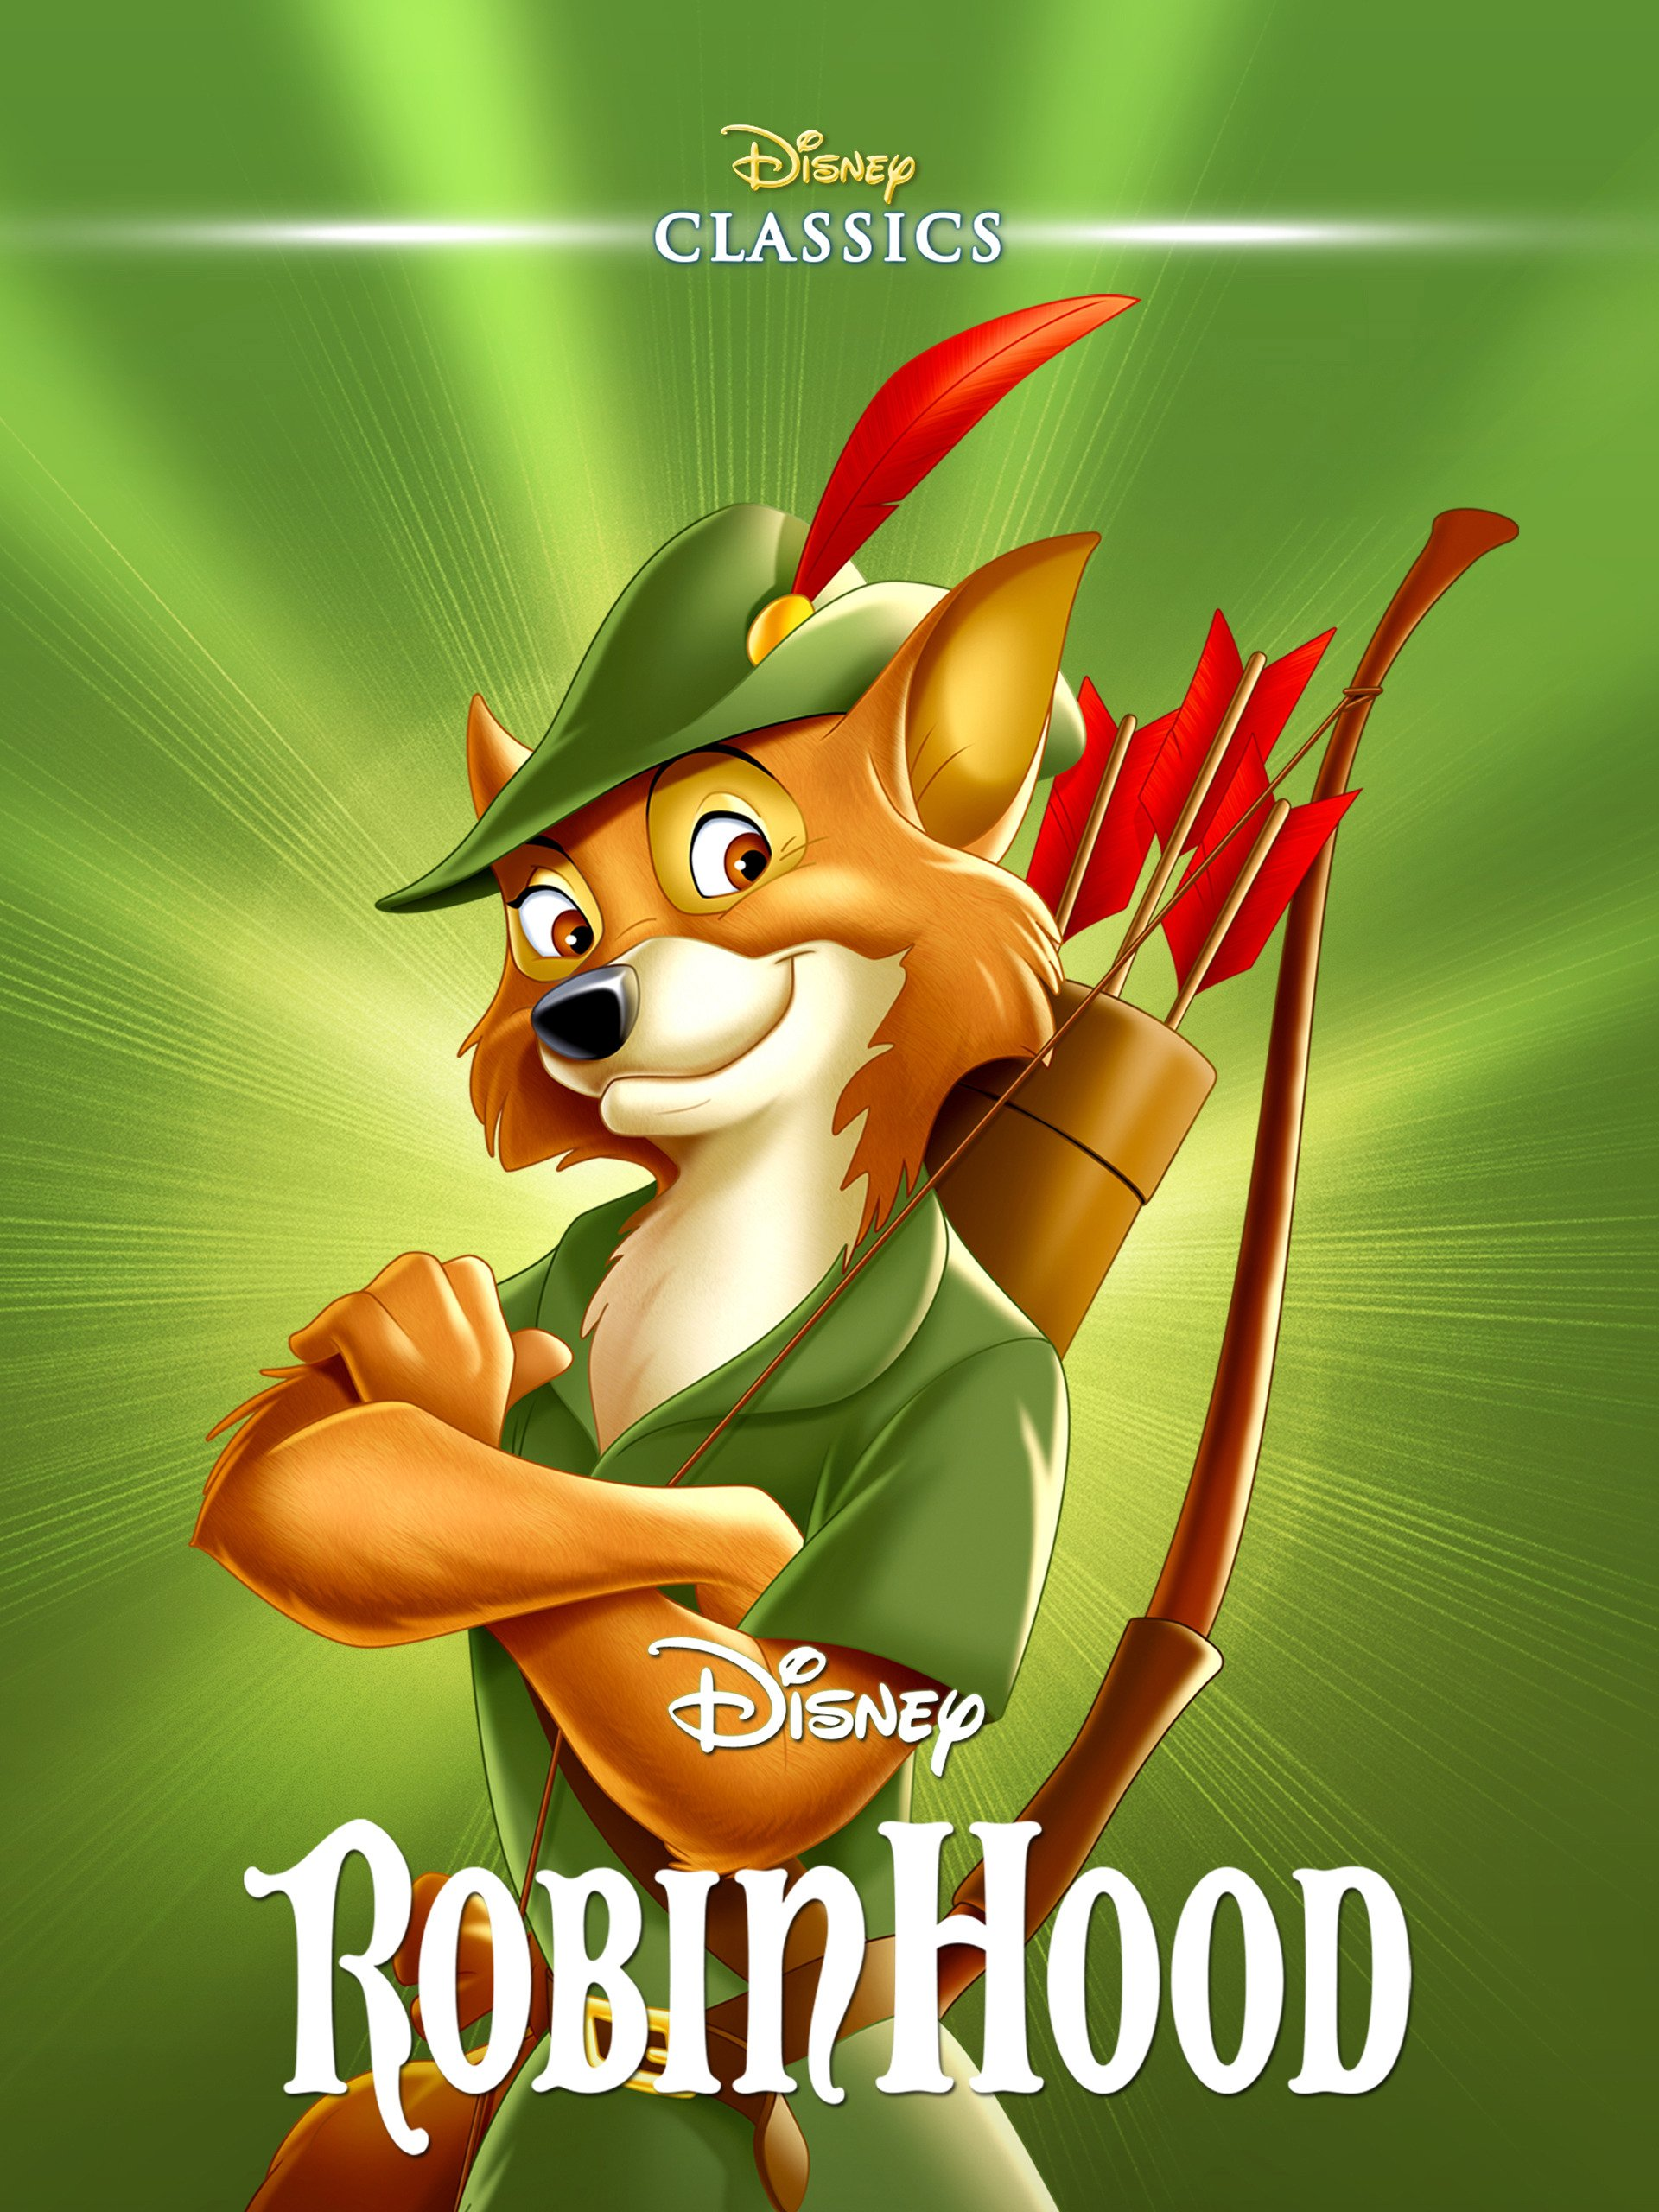 Amazon.de: Robin Hood ansehen | Prime Video